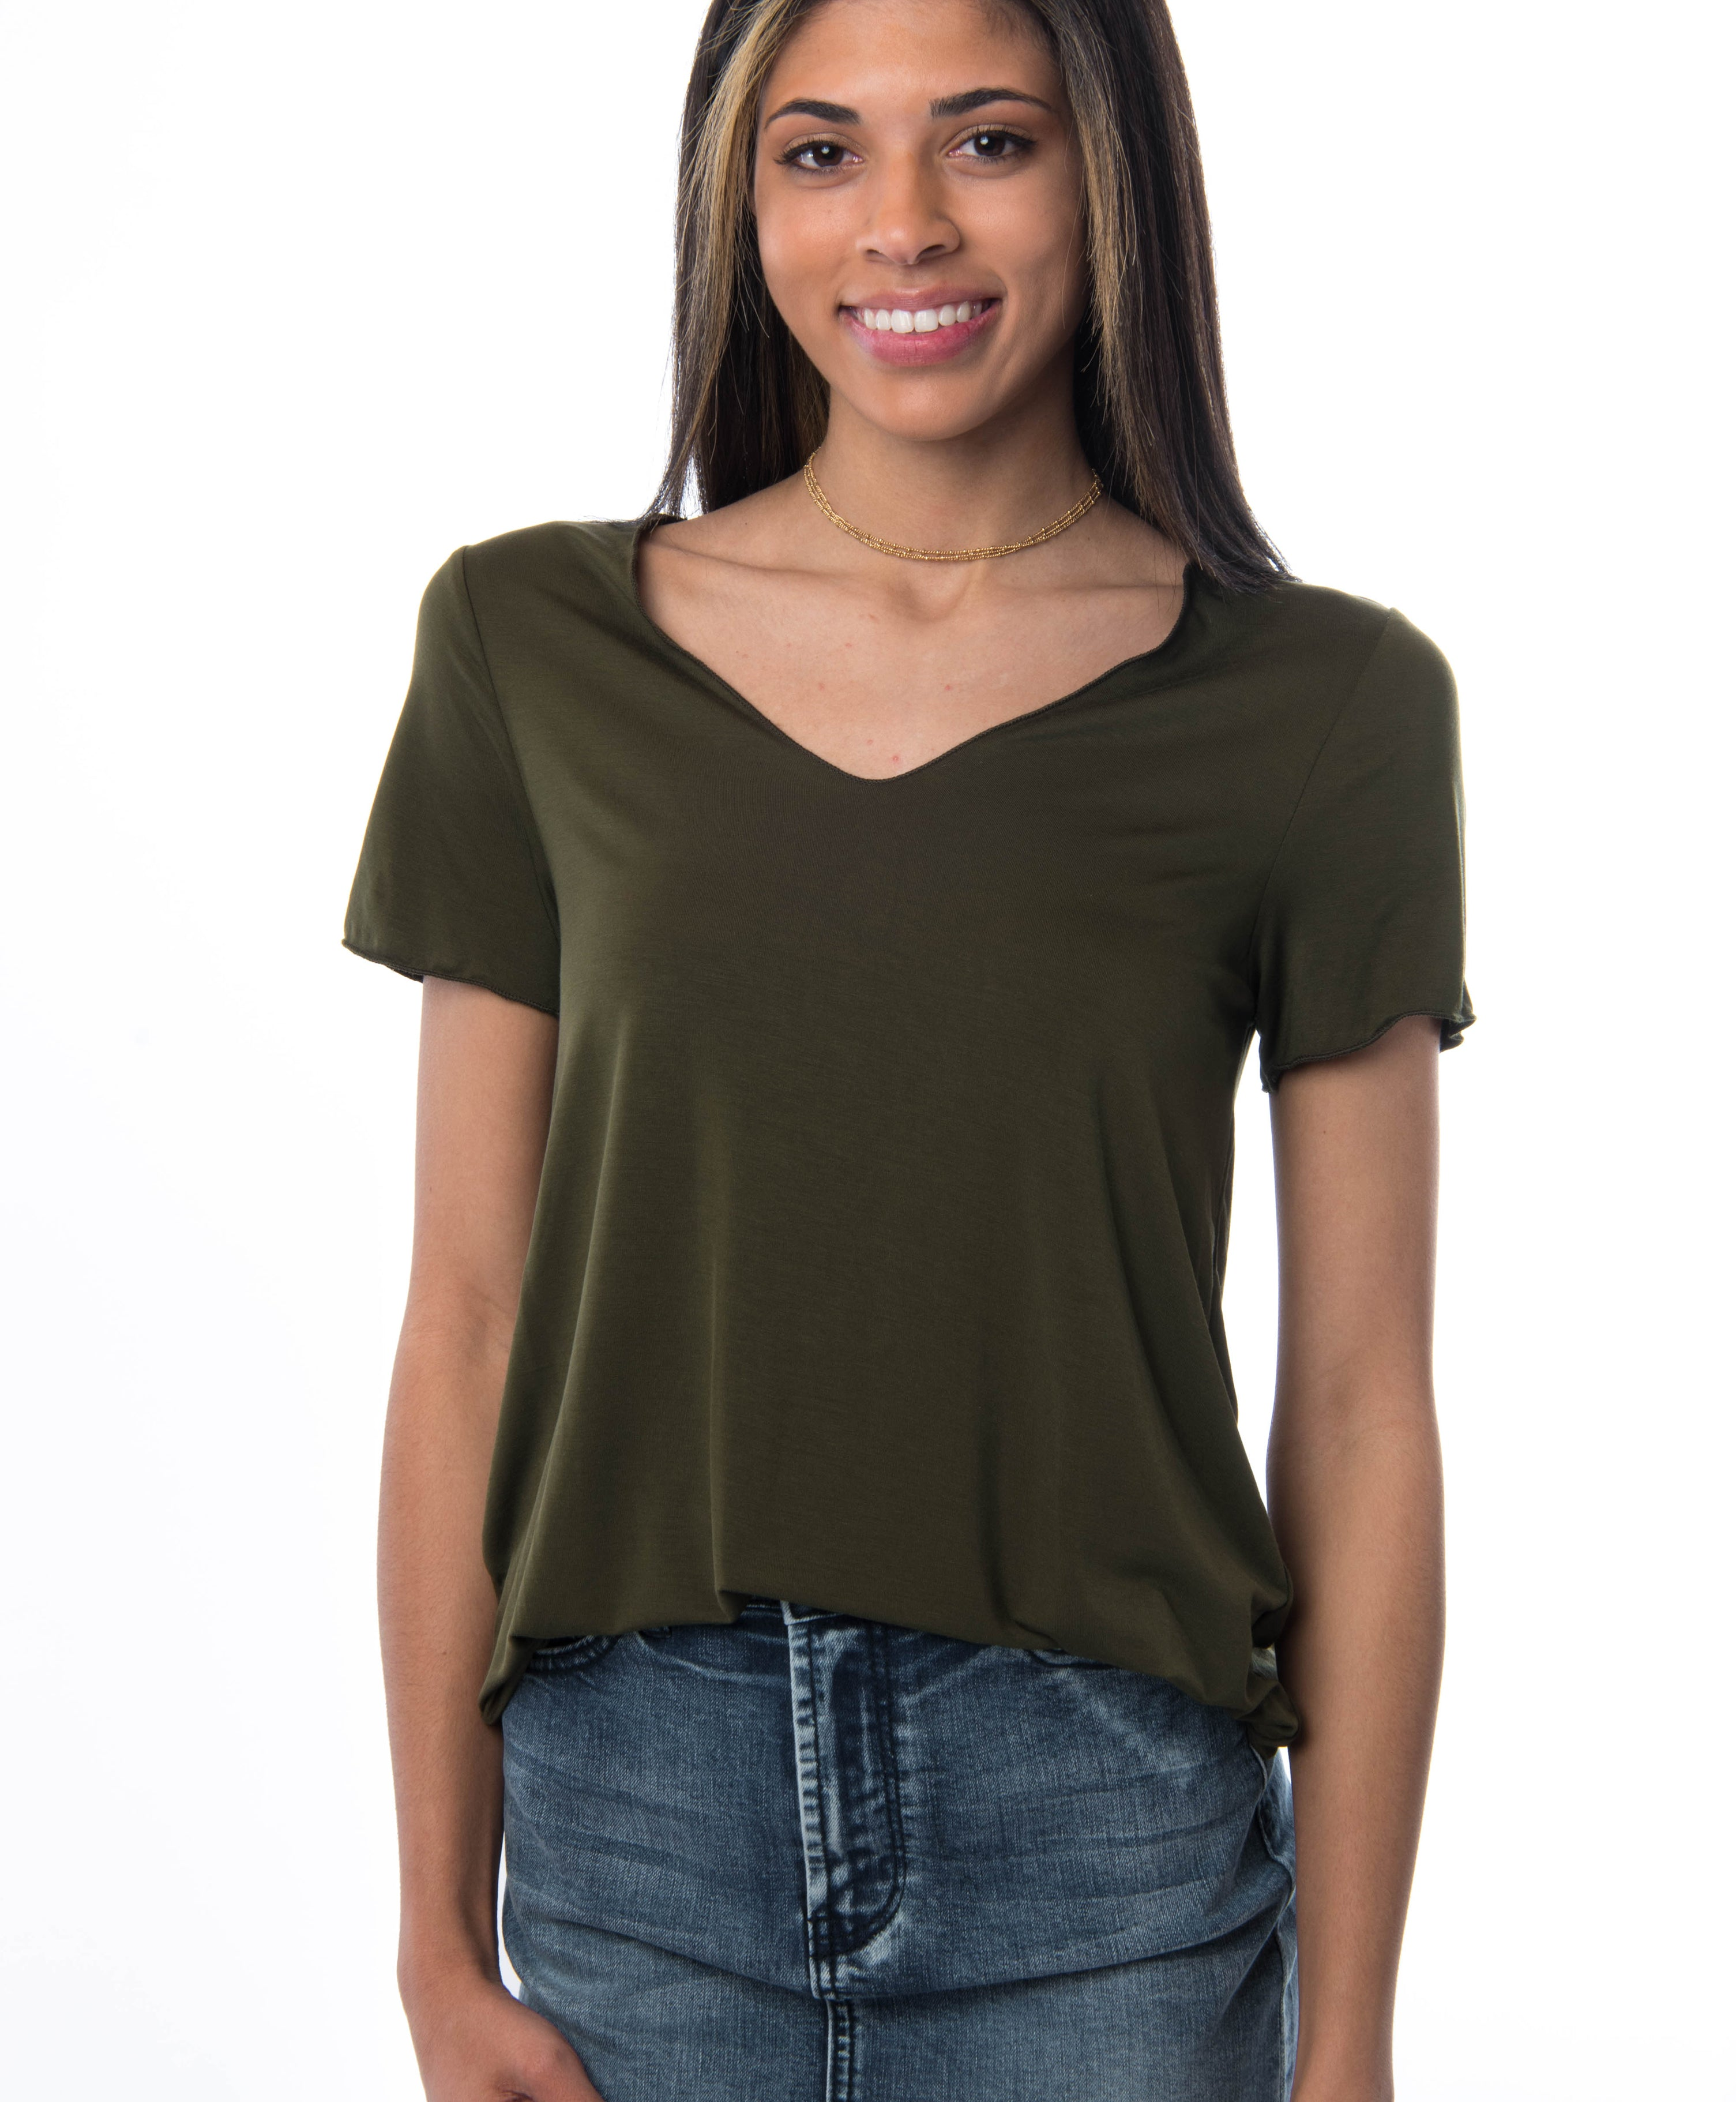 The Everyday Tee | Tops | Bailey Nicole - Women's Clothes for All Occasions